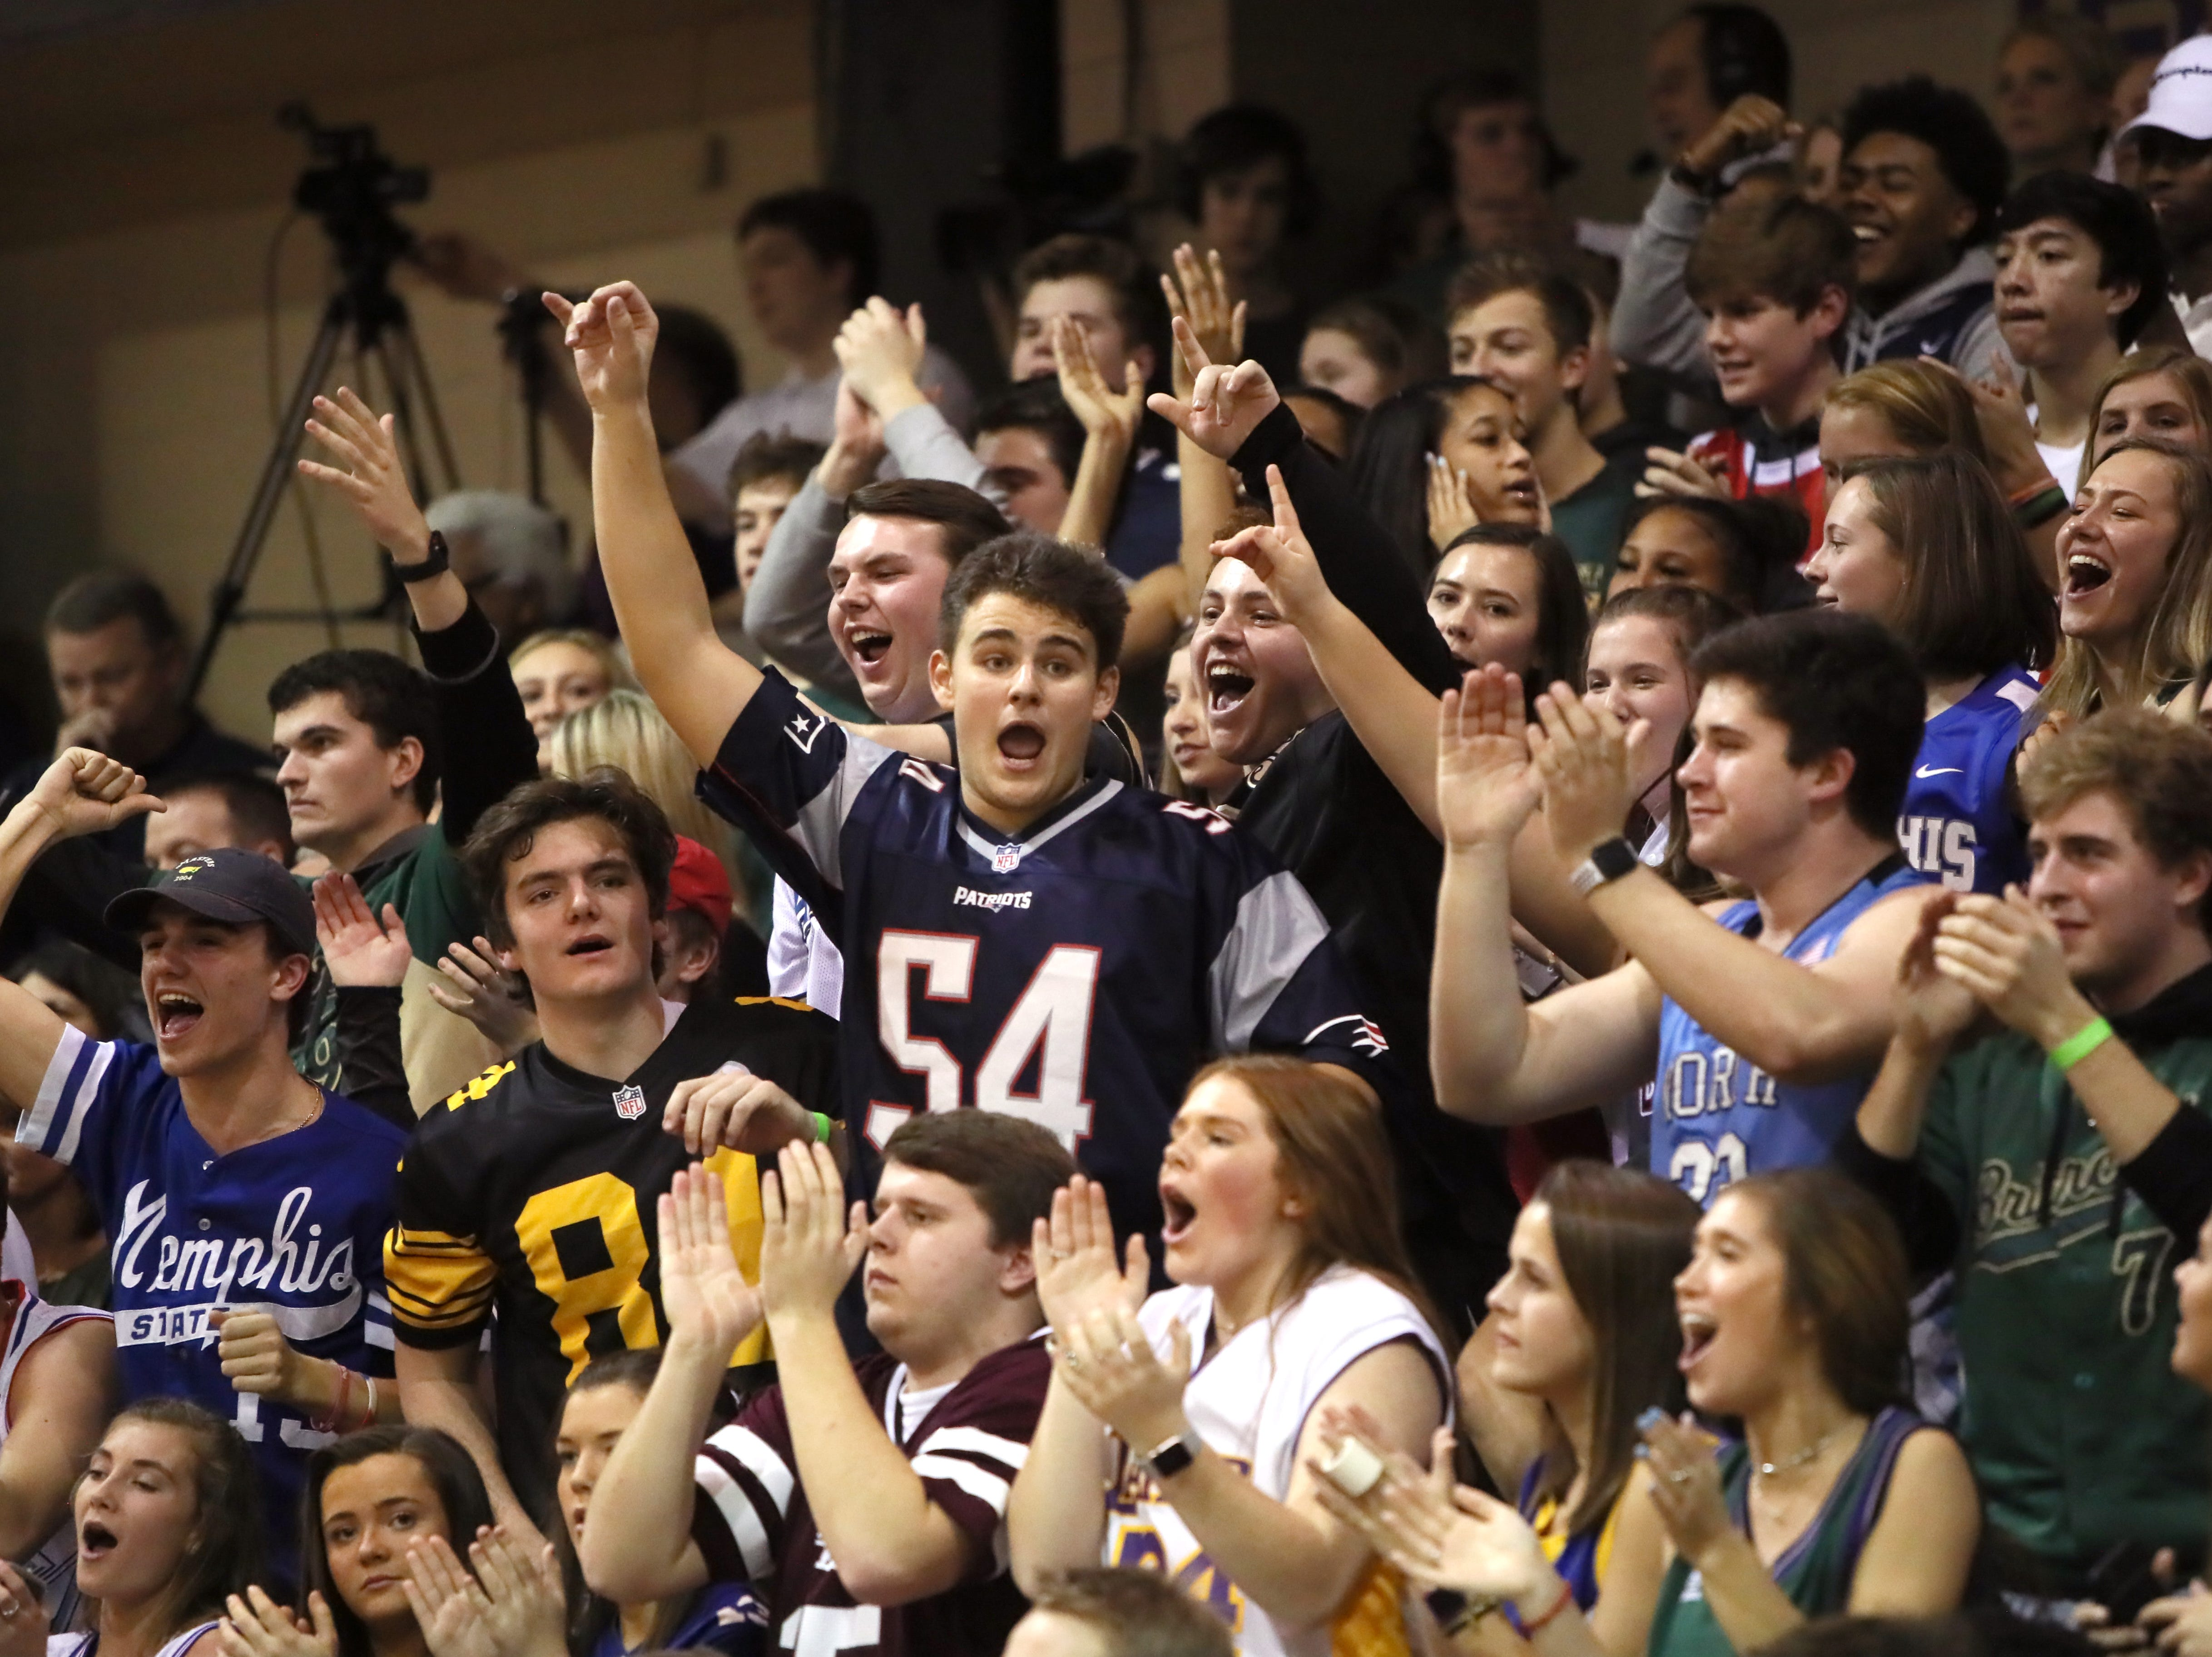 Briarcrest's students cheer on their team at Christian Brothers High School on Friday, Jan. 11, 2019.